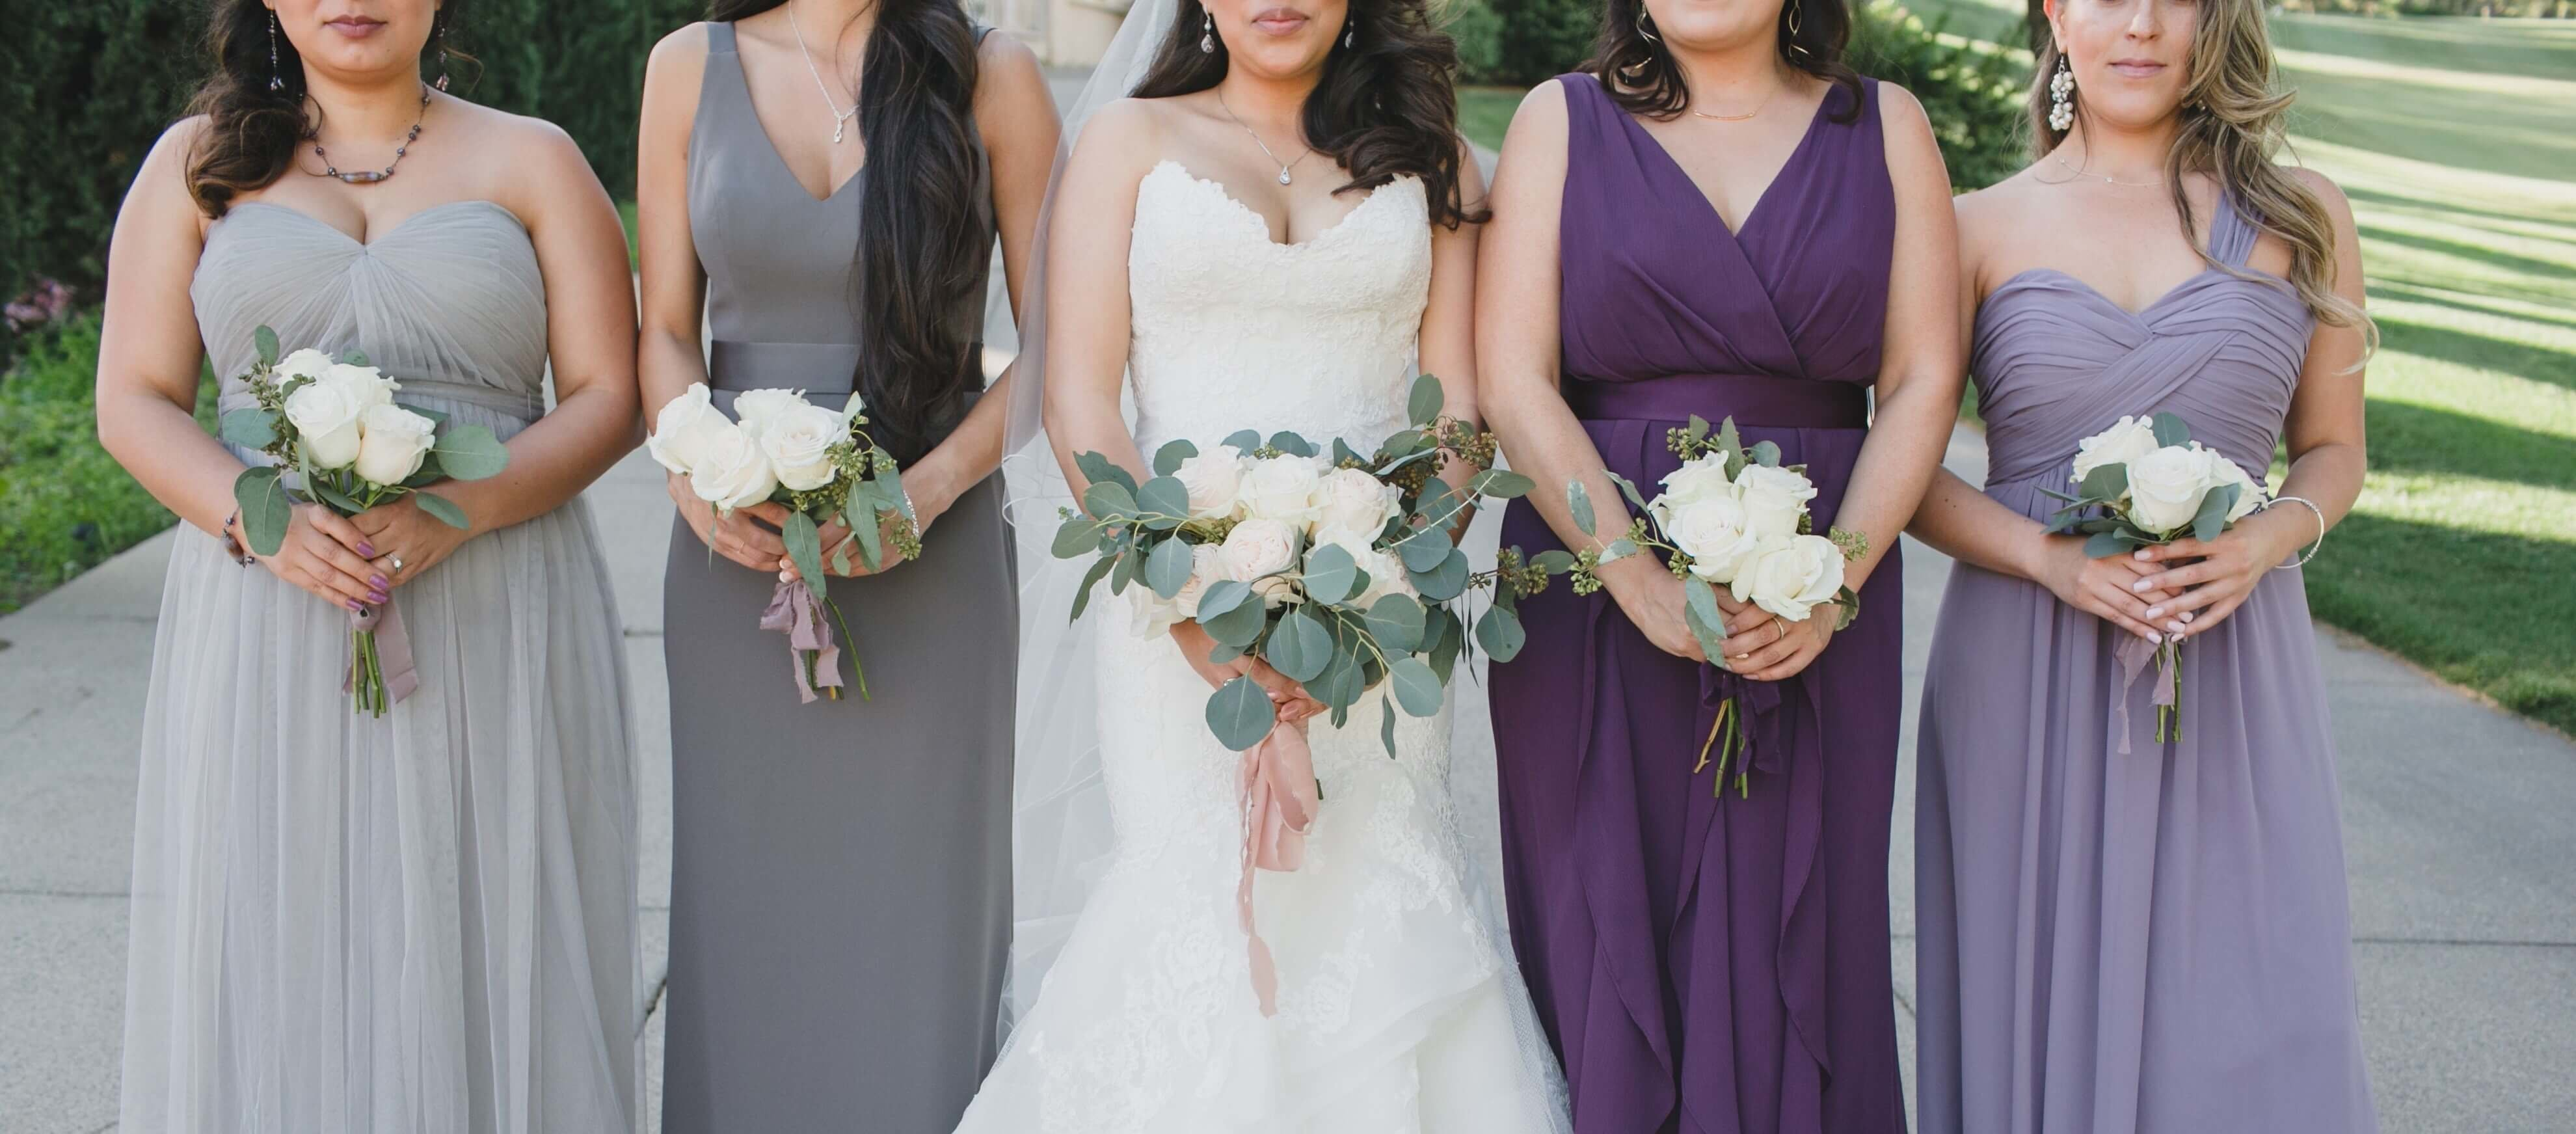 Bridal Party Showing Off Their Ivory Wedding Flower Arrangements